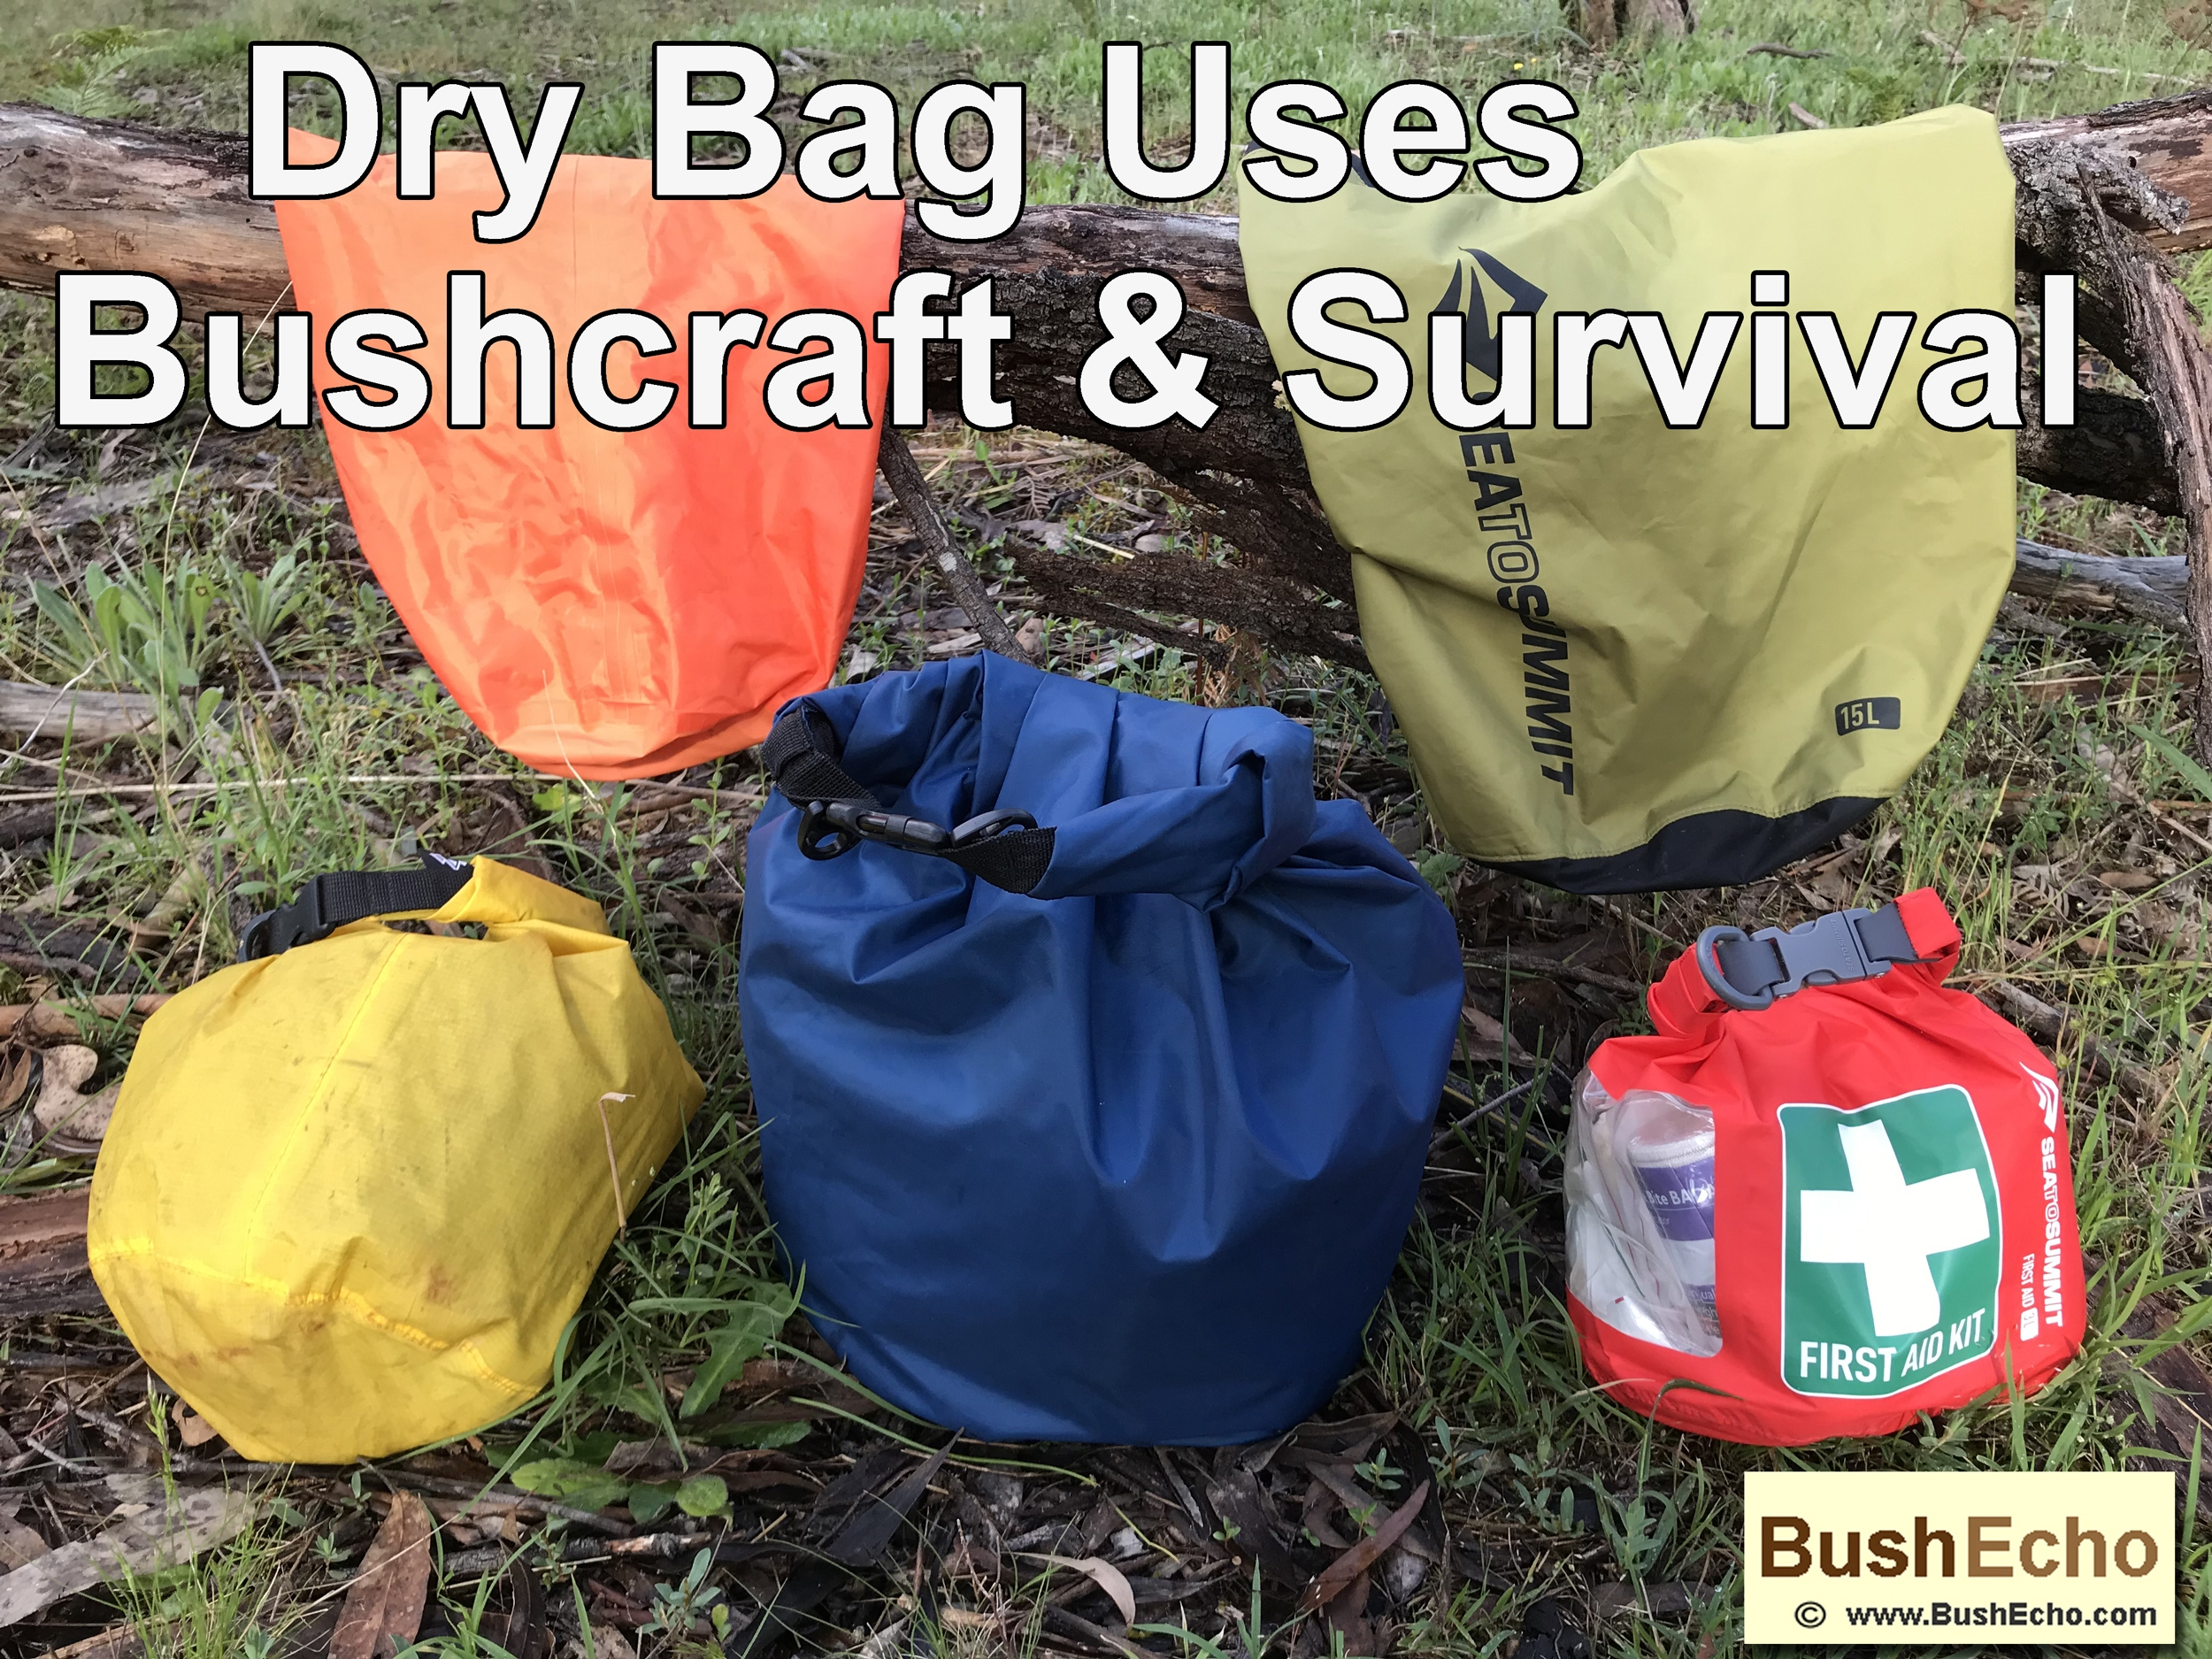 Bushcraft & Survival Uses For The Dry Bag.